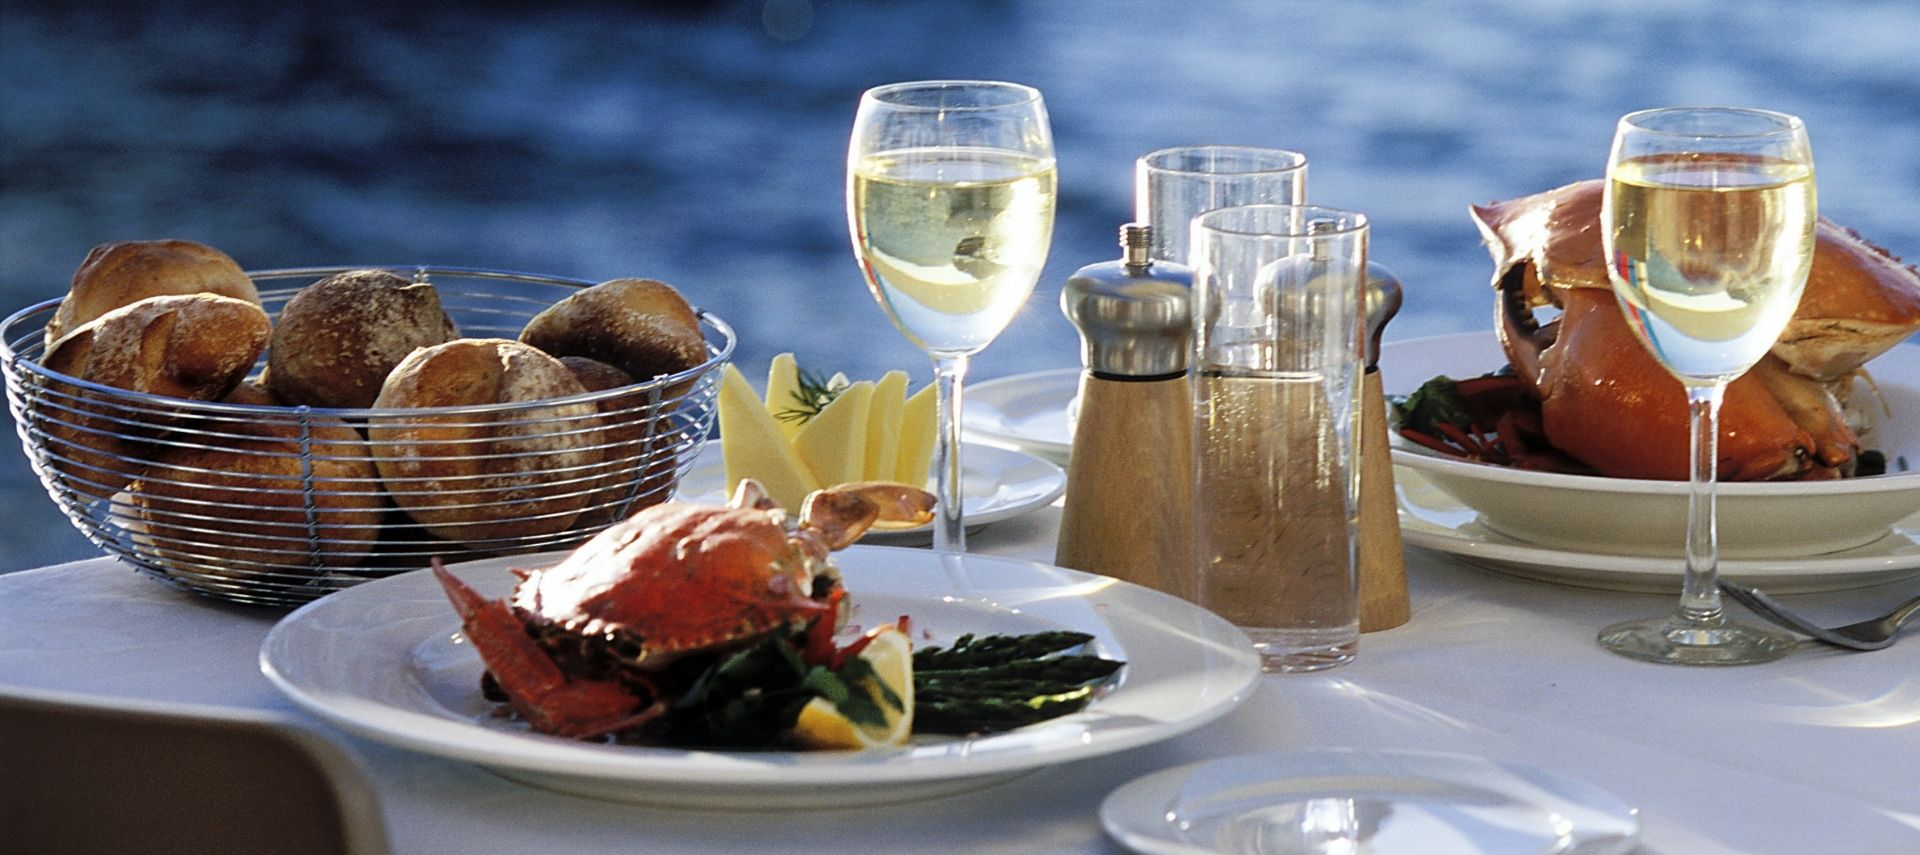 Dining table set with fresh seafood overlooking the water